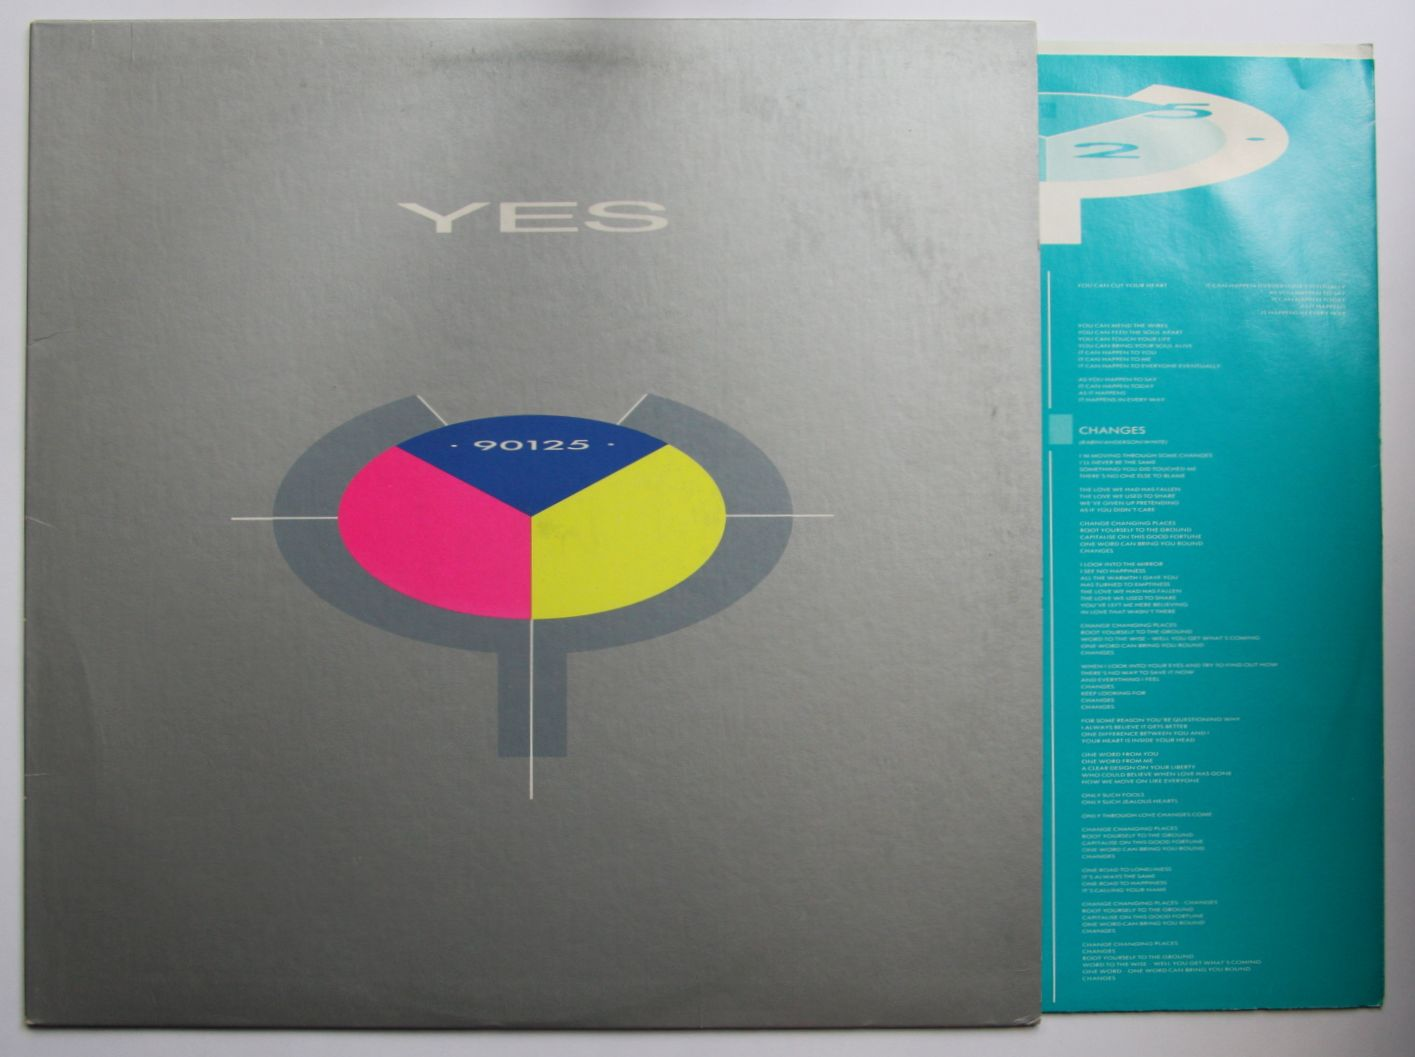 Yes - 90125 CD